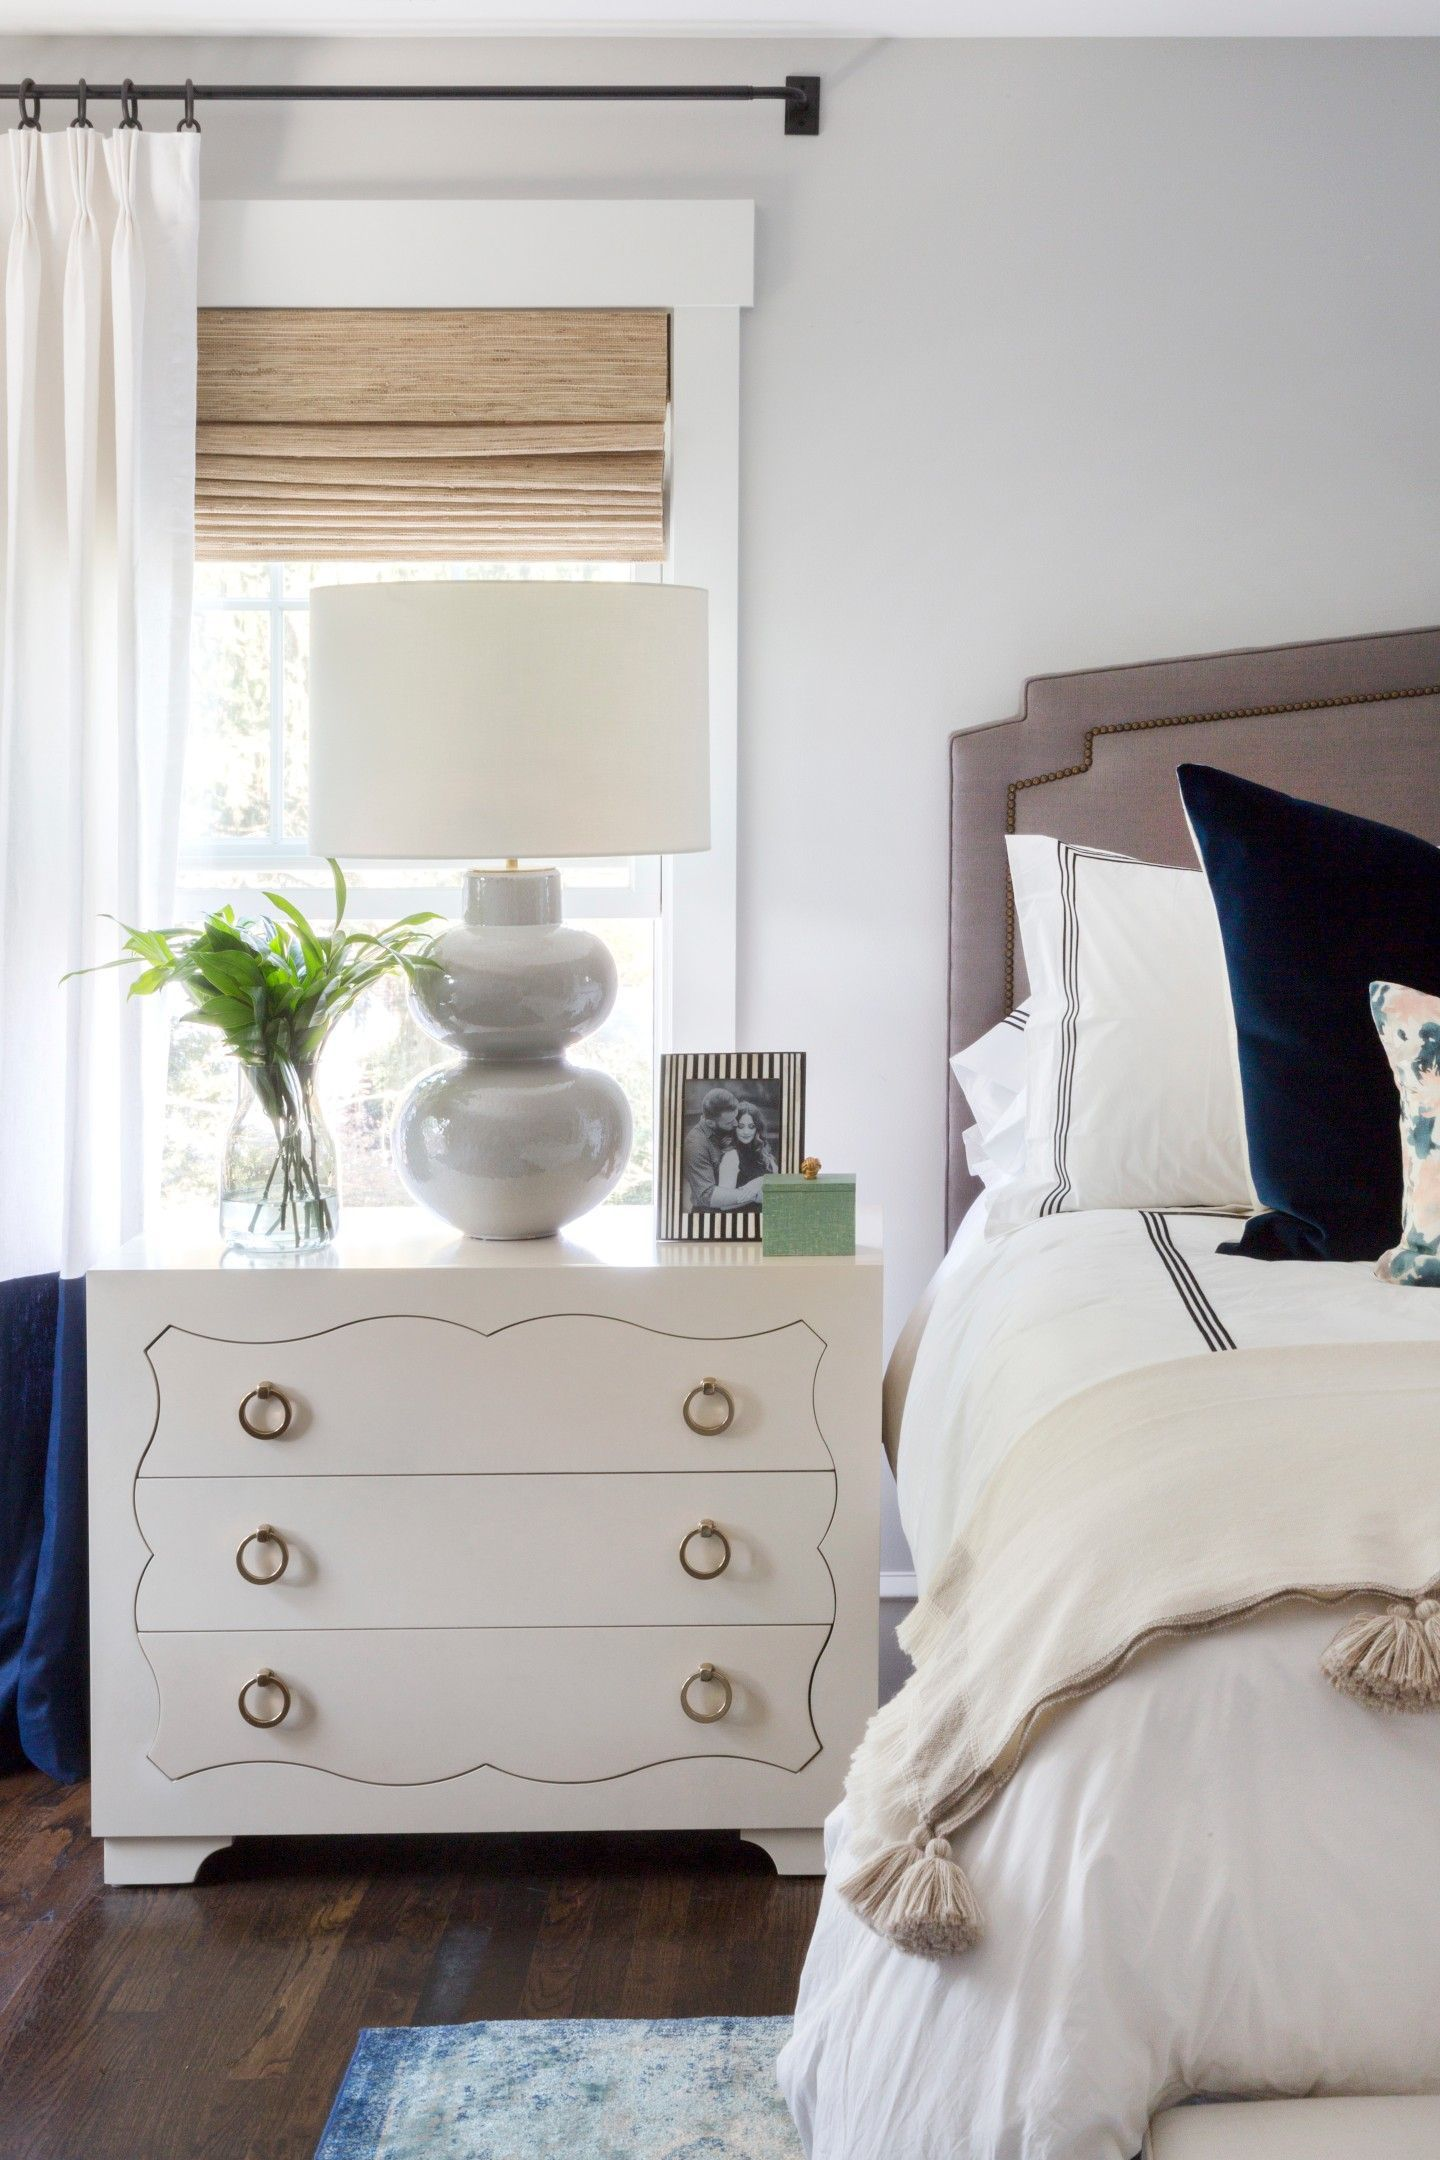 3 window bedroom ideas   window treatment ideas for every room in your home  window